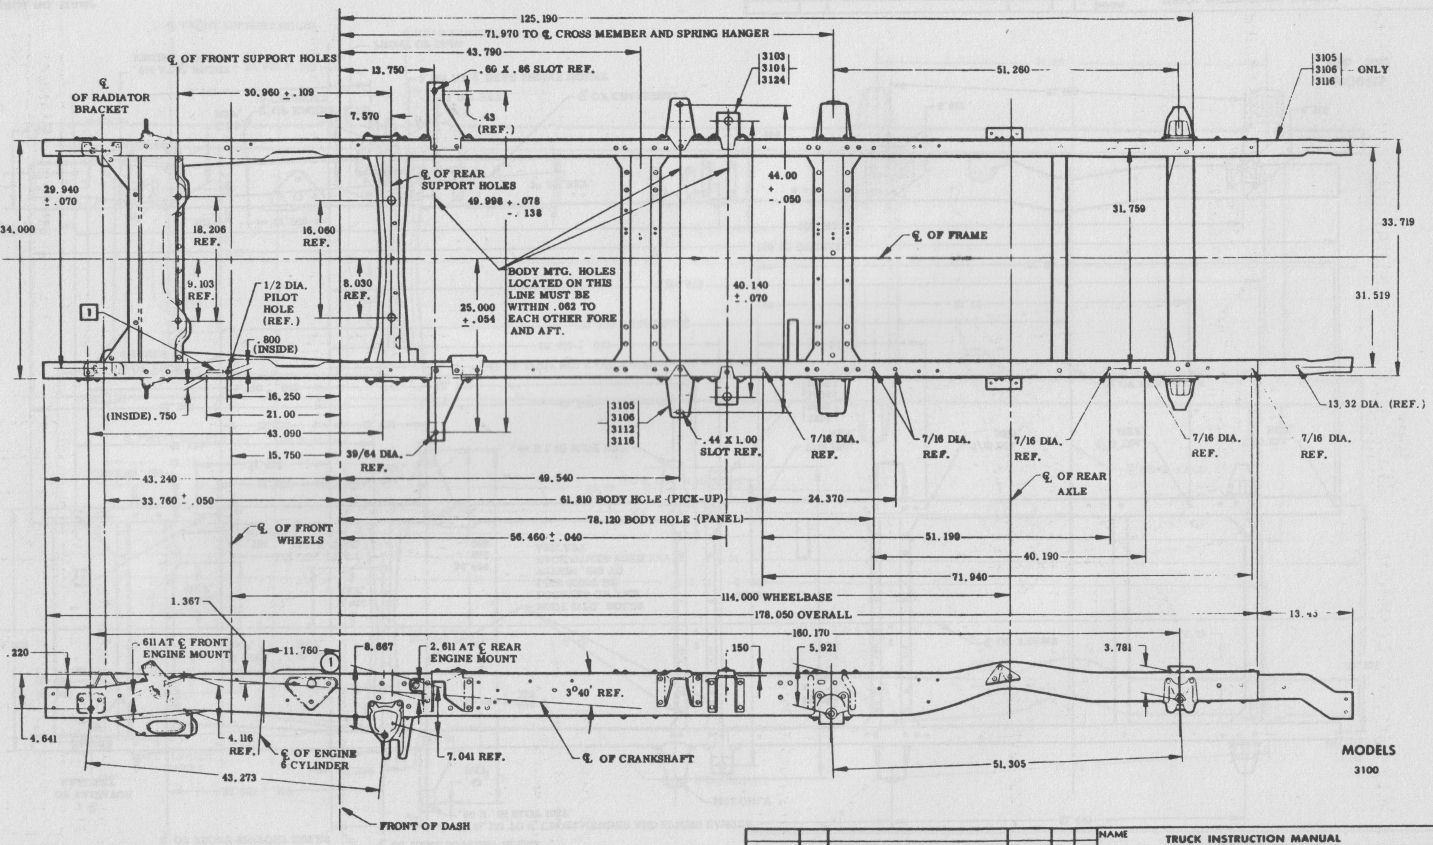 1931 Chevrolet Wiring Diagram together with HP PartList furthermore Thursday Tech Specs moreover 162481499027268255 as well 1930 Ford Wiring Diagram. on 1930 ford model a parts